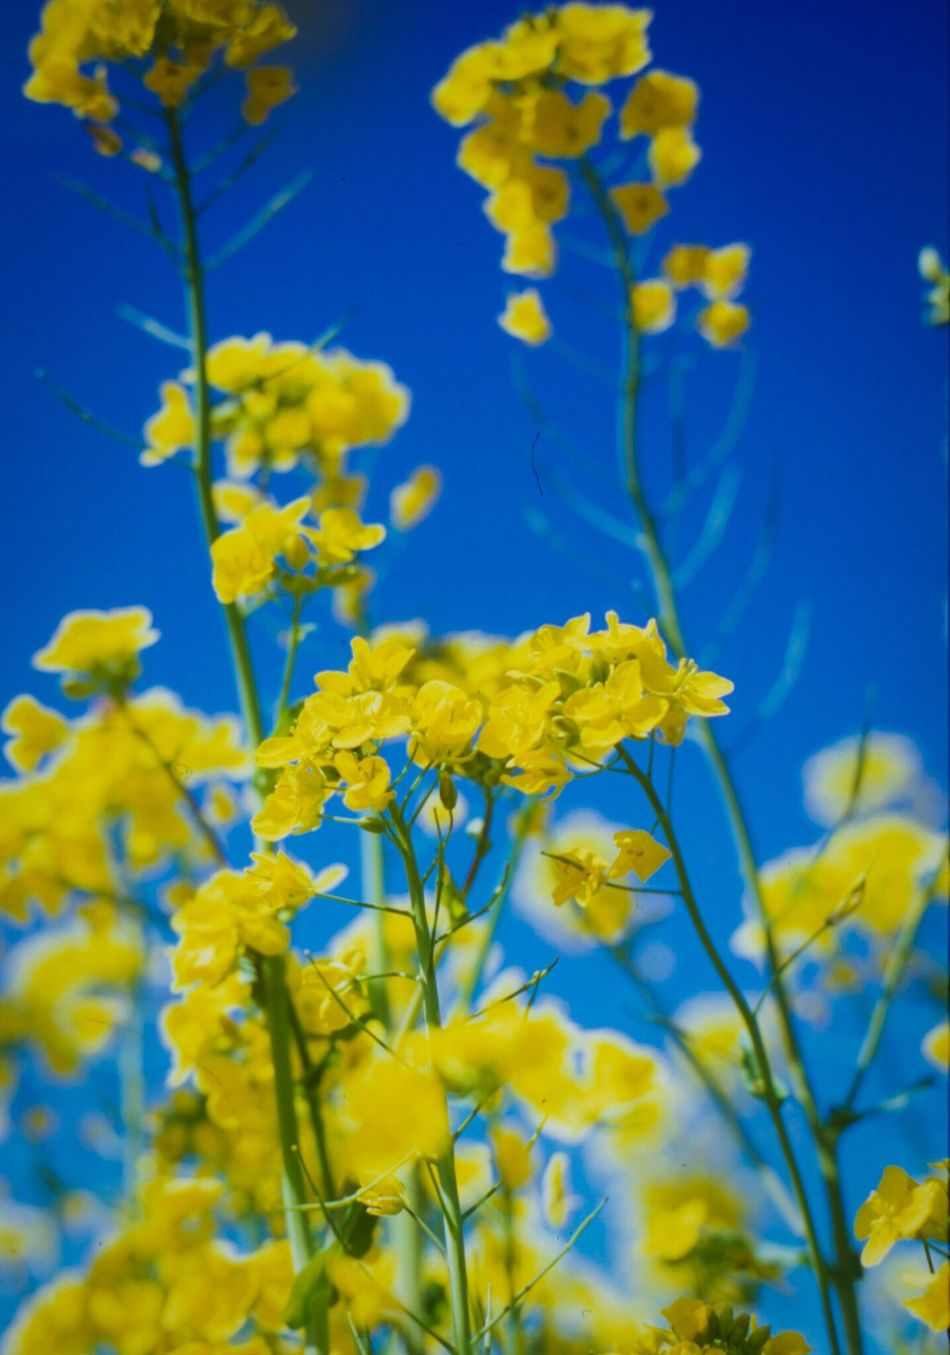 Reversalfilm Film Photography Pastel Power Blooming Field Mustard Yellow Spring EyeEm Nature Lover EyeEm Best Shots Sky